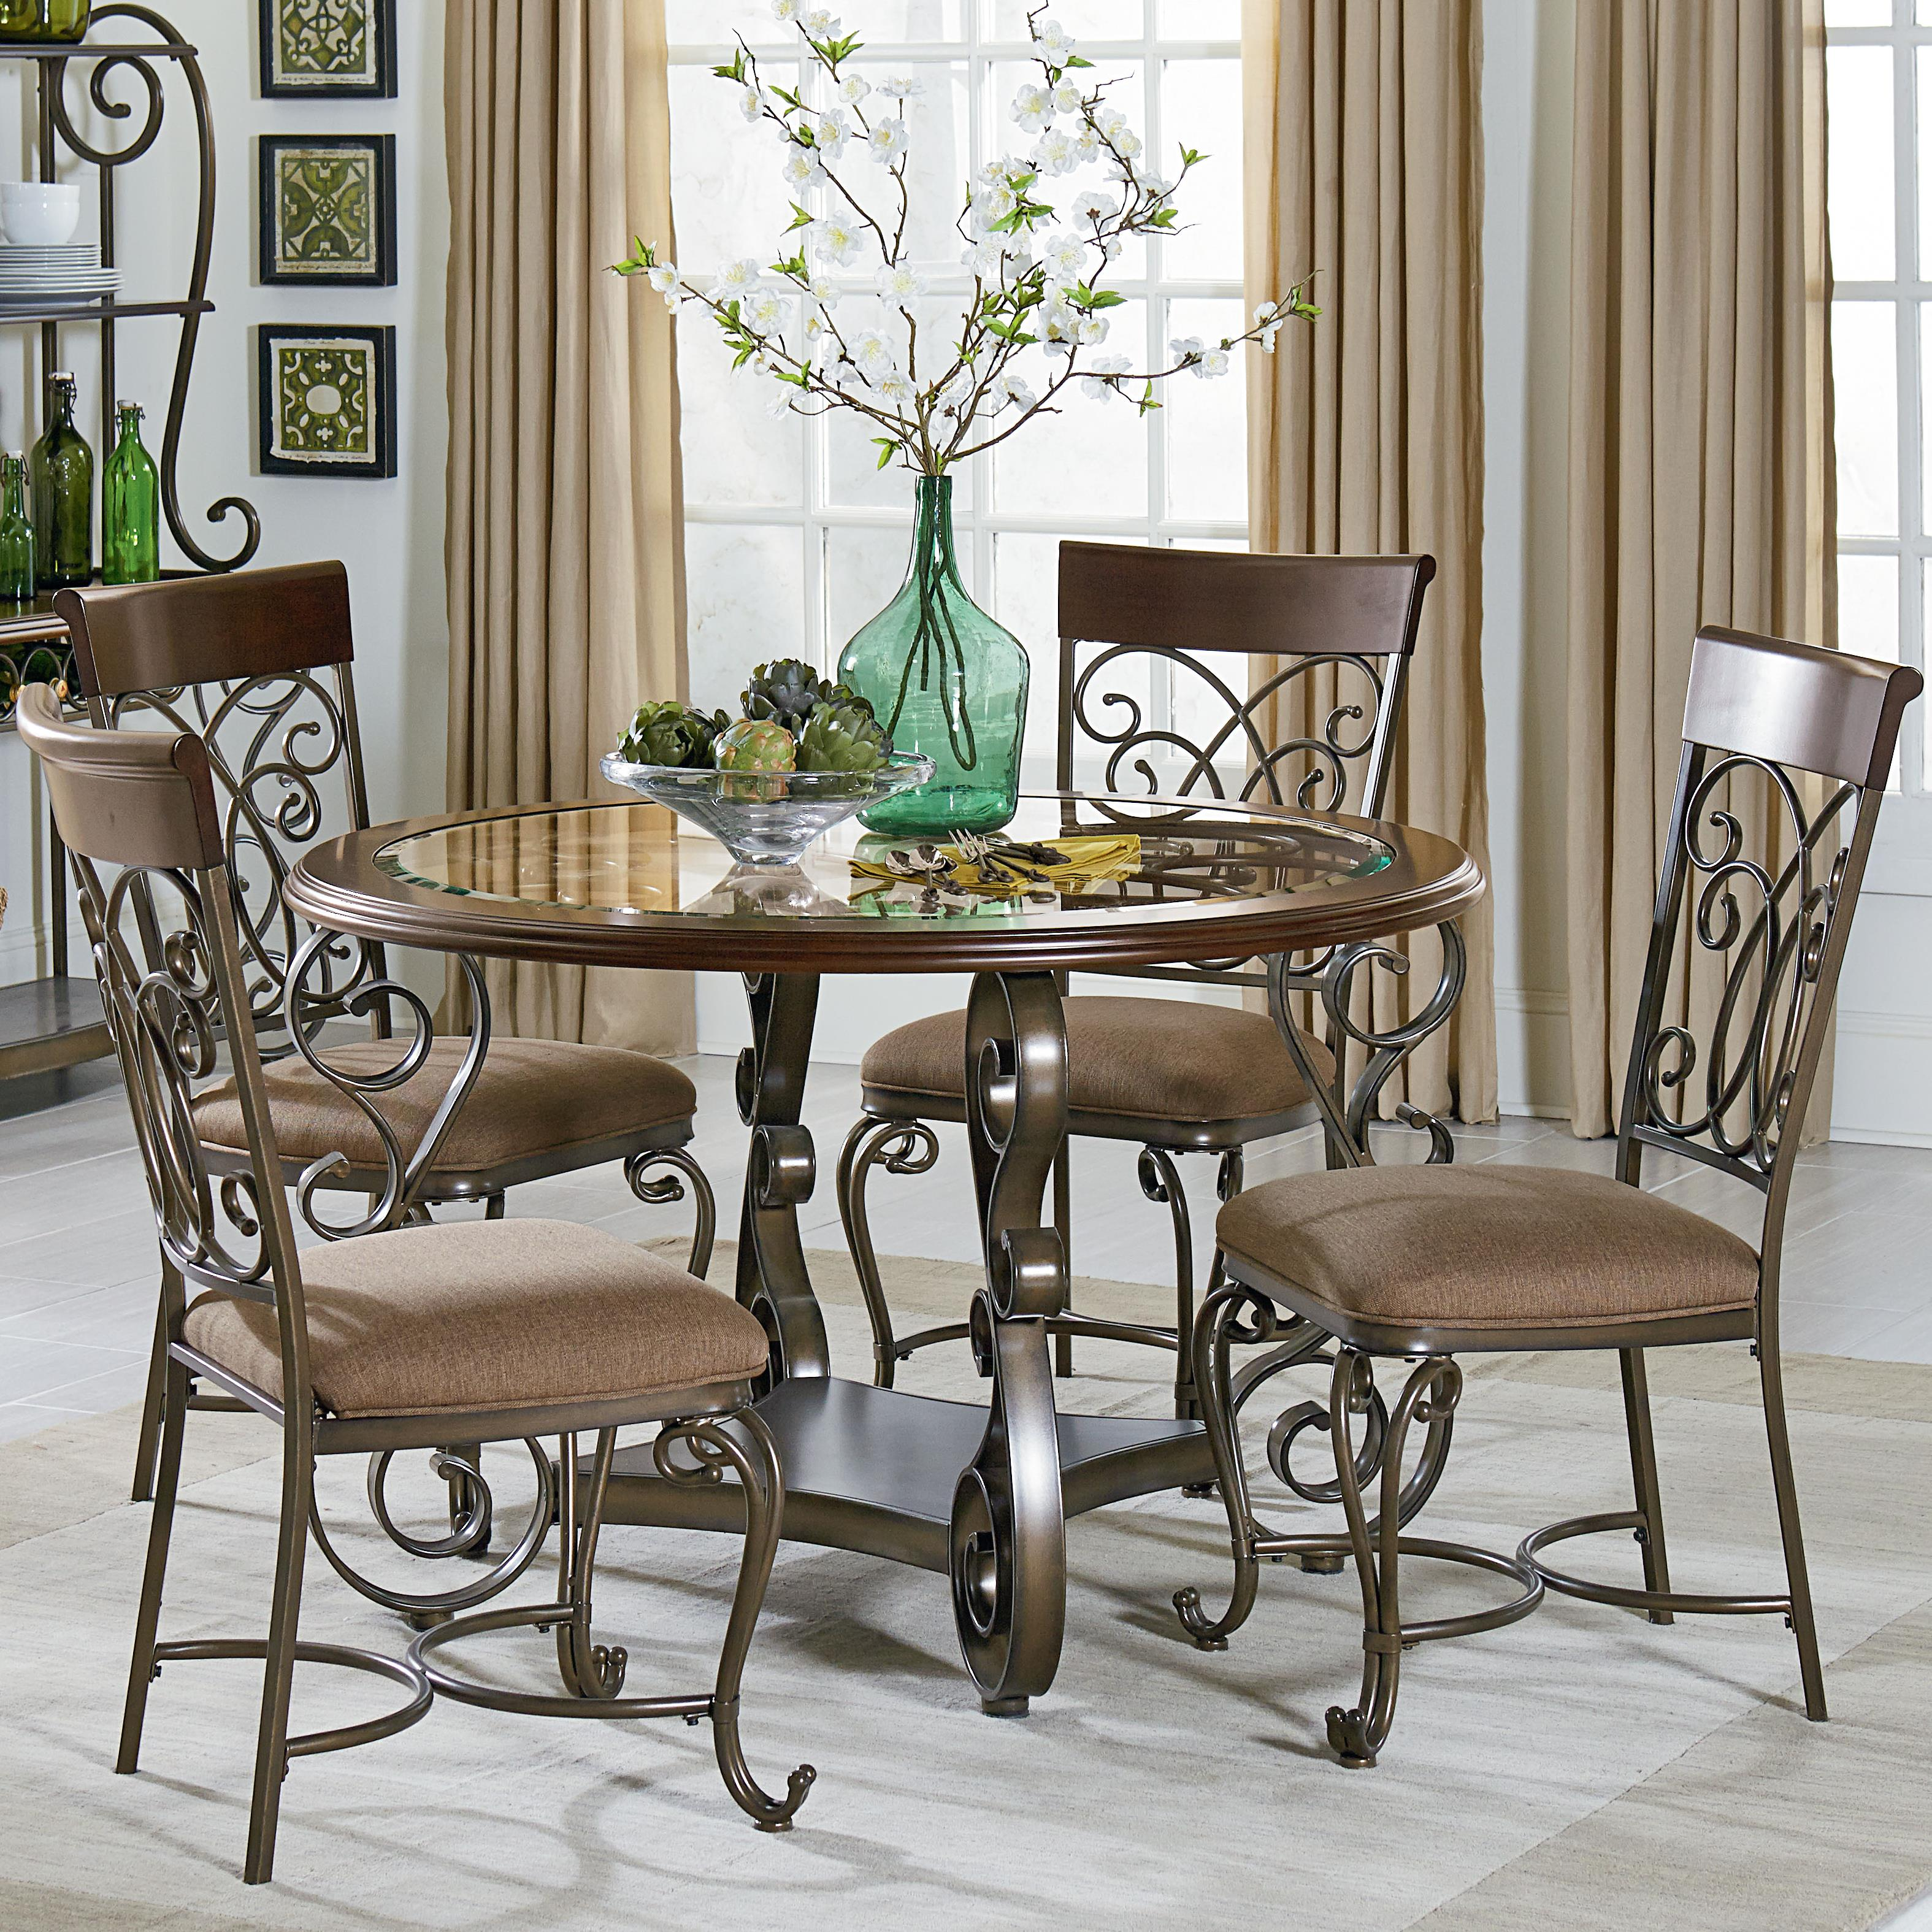 Standard Furniture Bombay Round Table and Chair Set - Item Number: 13421+4x13424